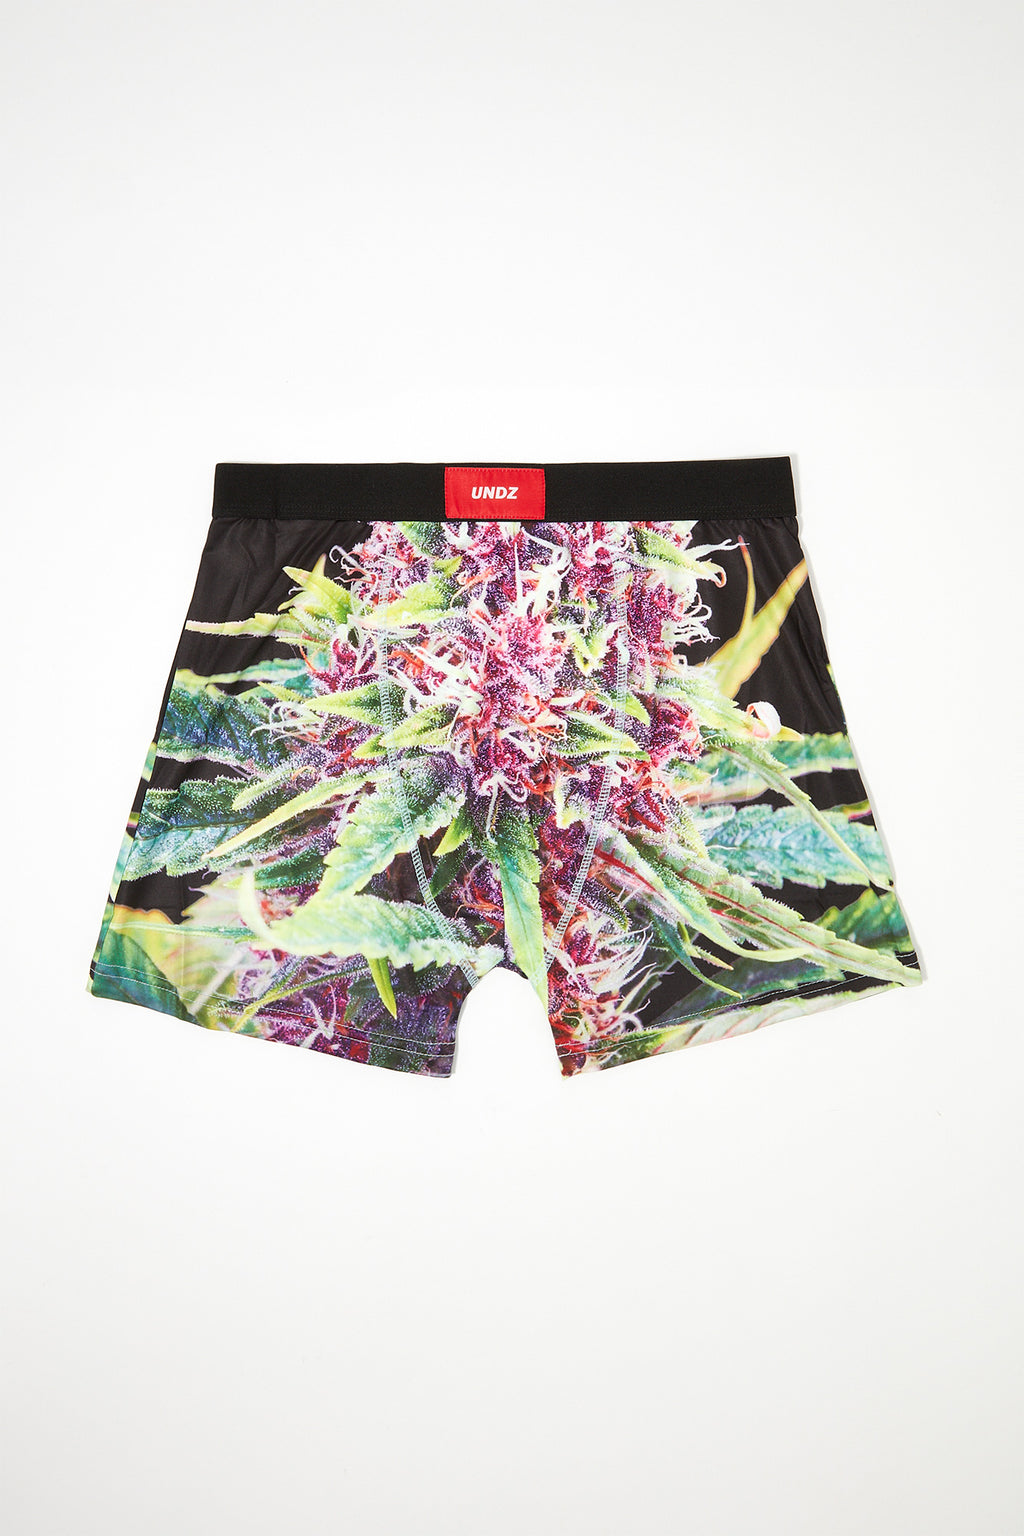 UNDZ Mens Purple Kush Boxer Brief